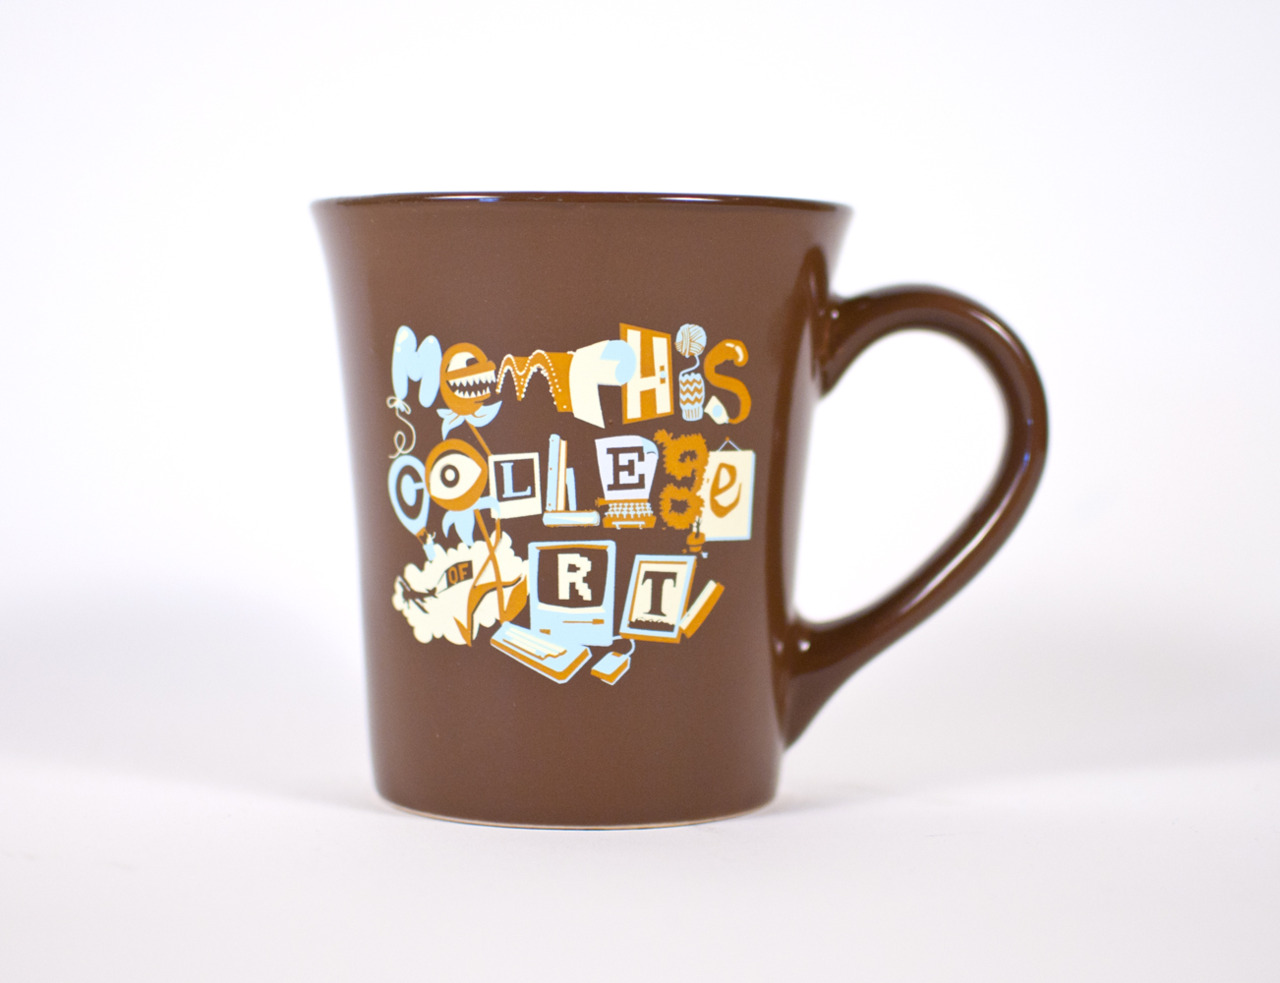 That design I did for Memphis College of Art t-shirts ended up printed on coffee mugs, and they don't look half bad, if I do say so myself.